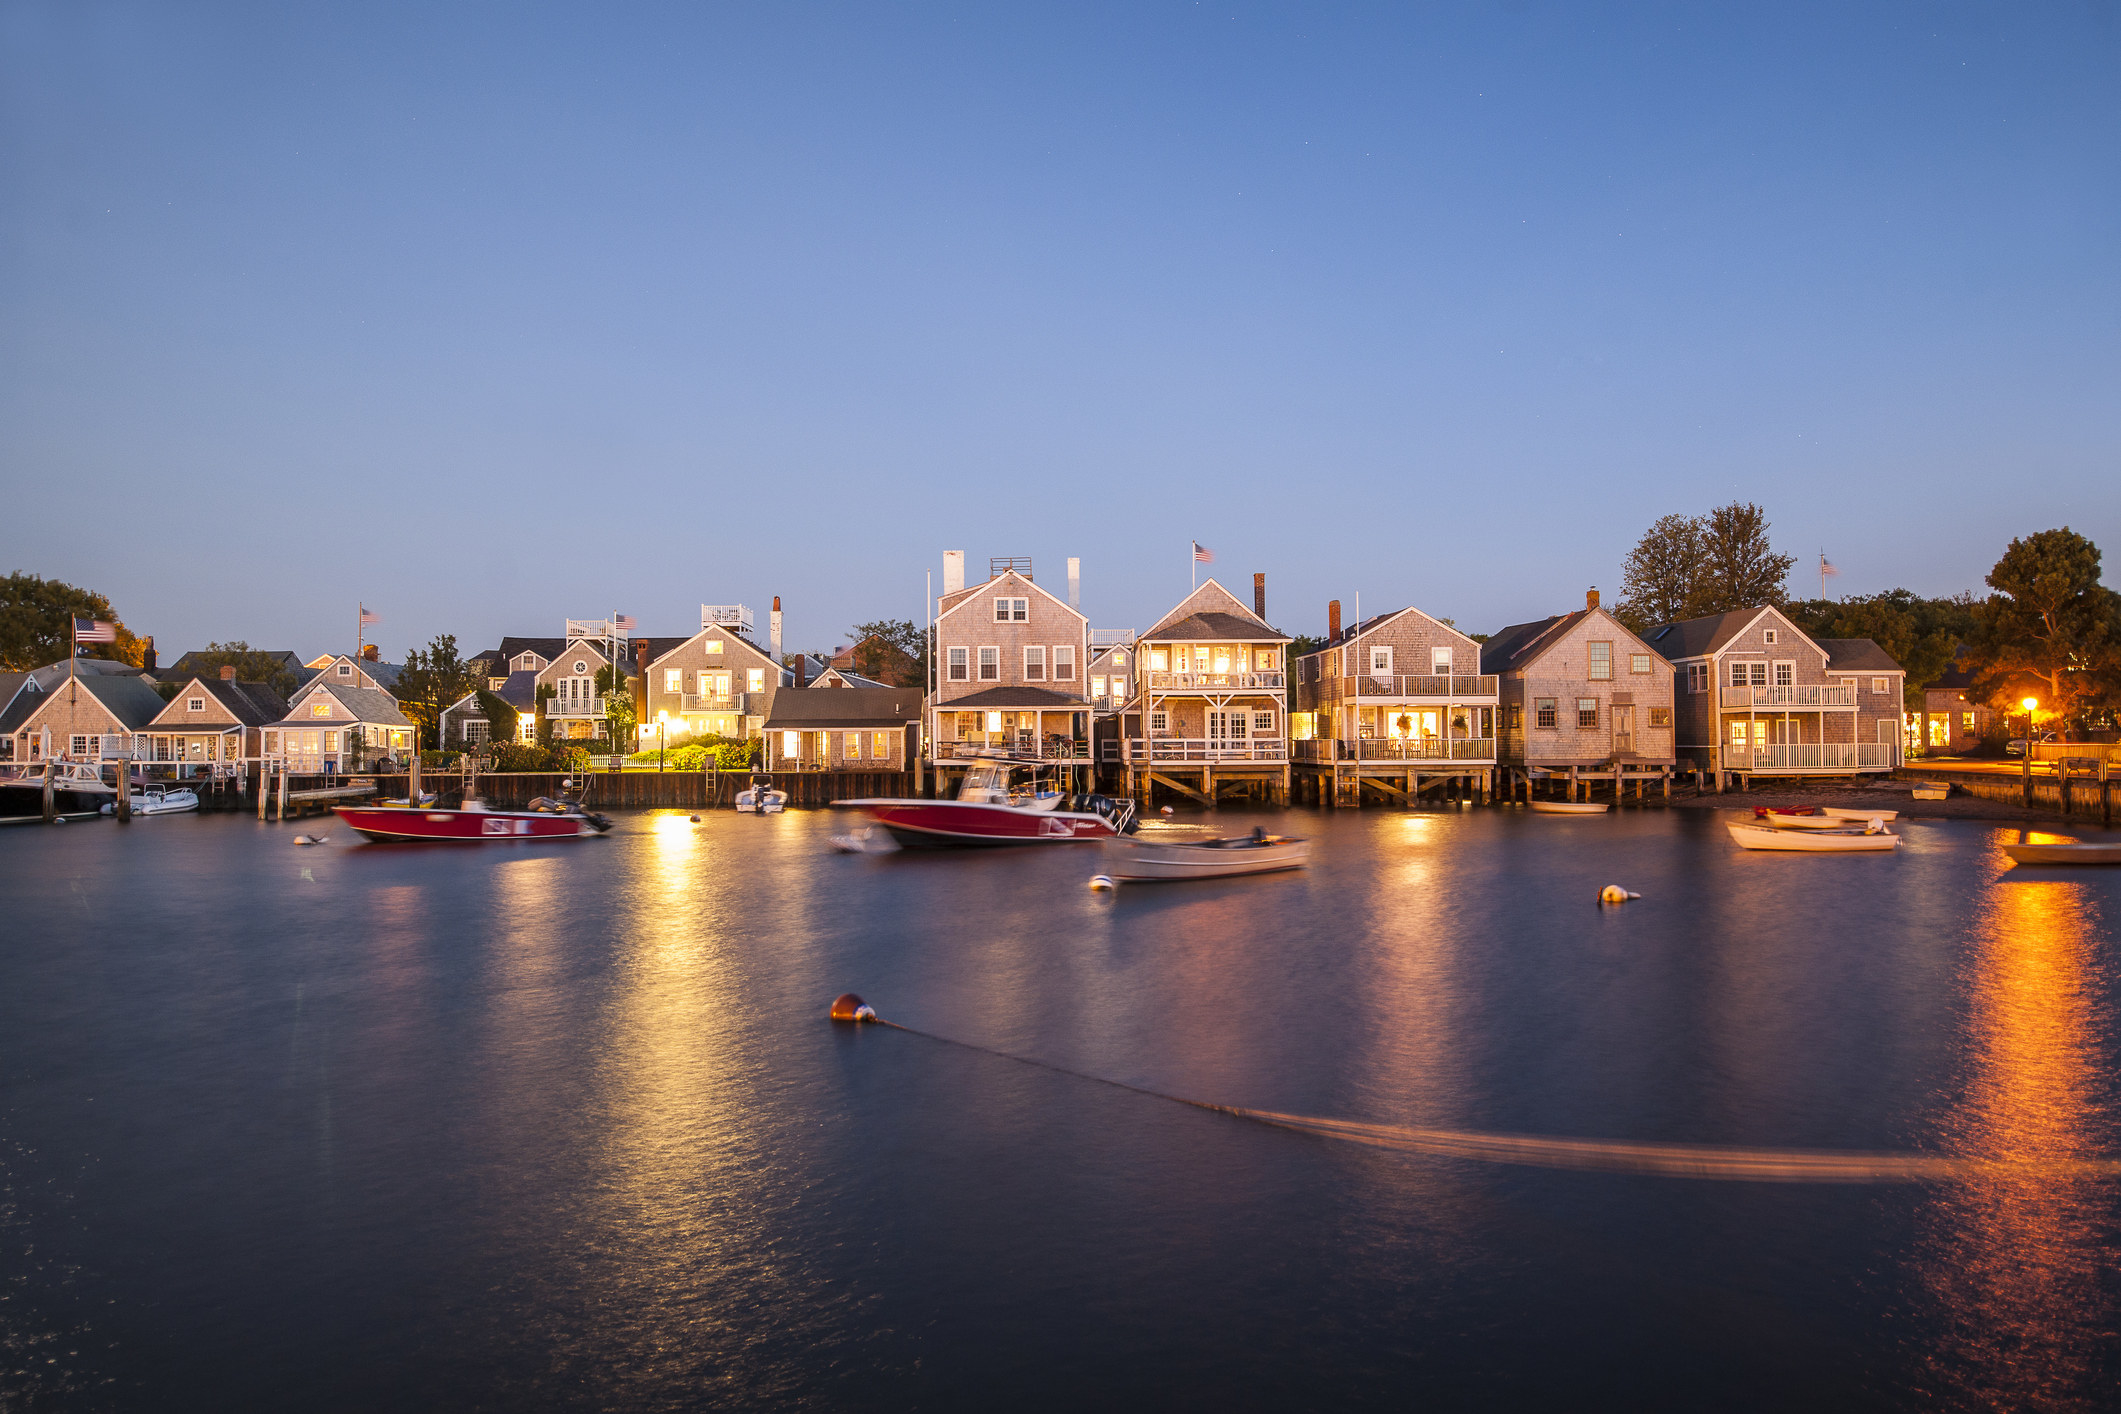 a row of cute houses along the waterfront at dusk